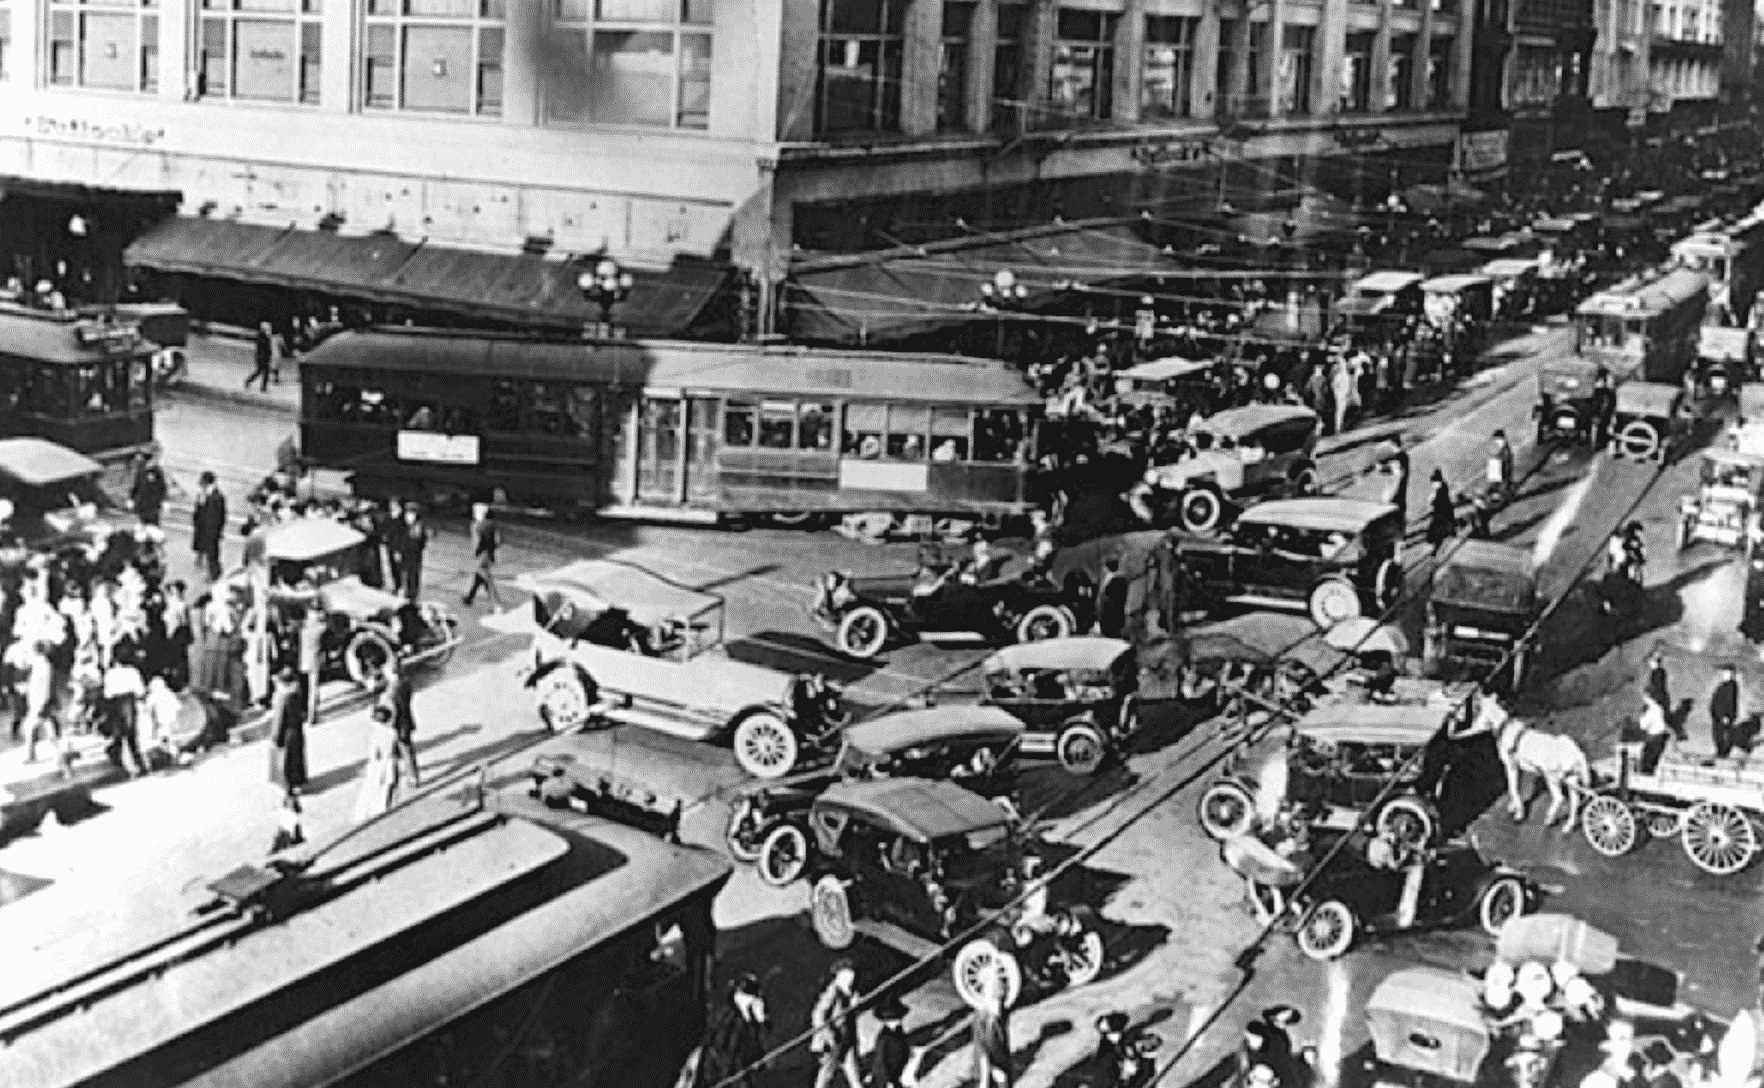 No lane dividers, signals or crosswalks before the Industrial Revolution. This is a good analogy for IoT and the power REST APIs could offer IoT systems